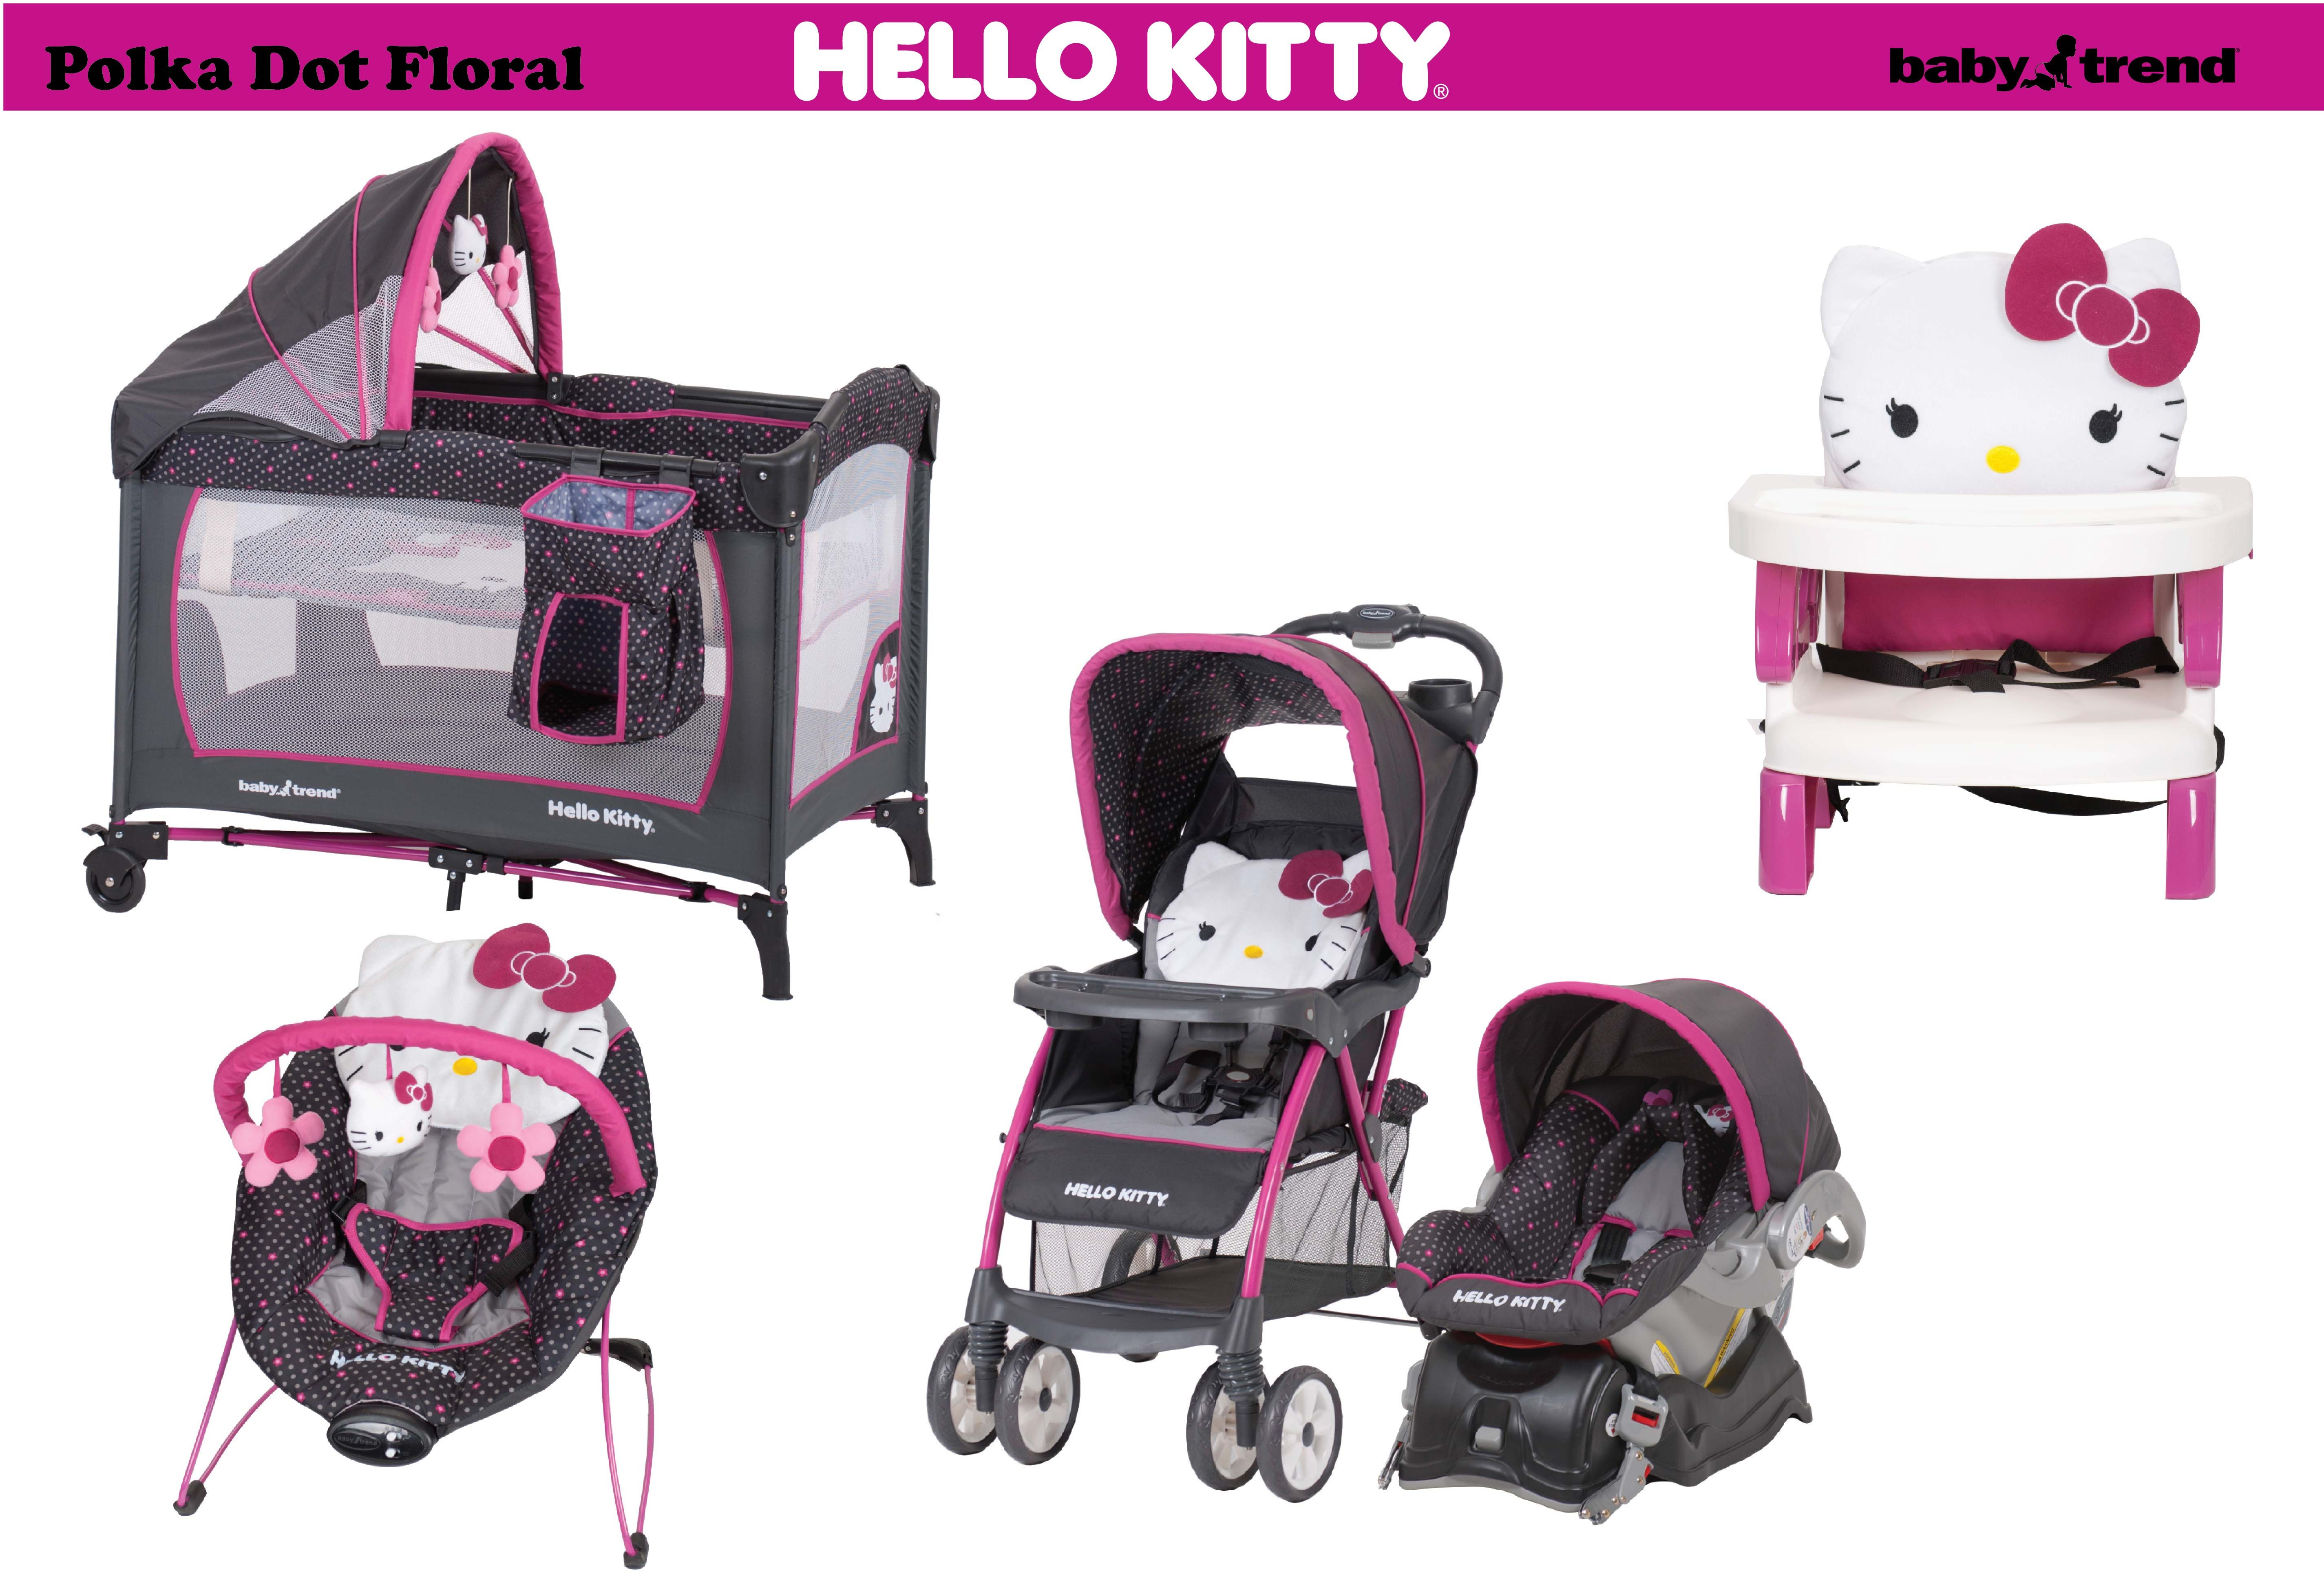 The Baby Trend Hello Kitty Collection In Polka Dot Floral